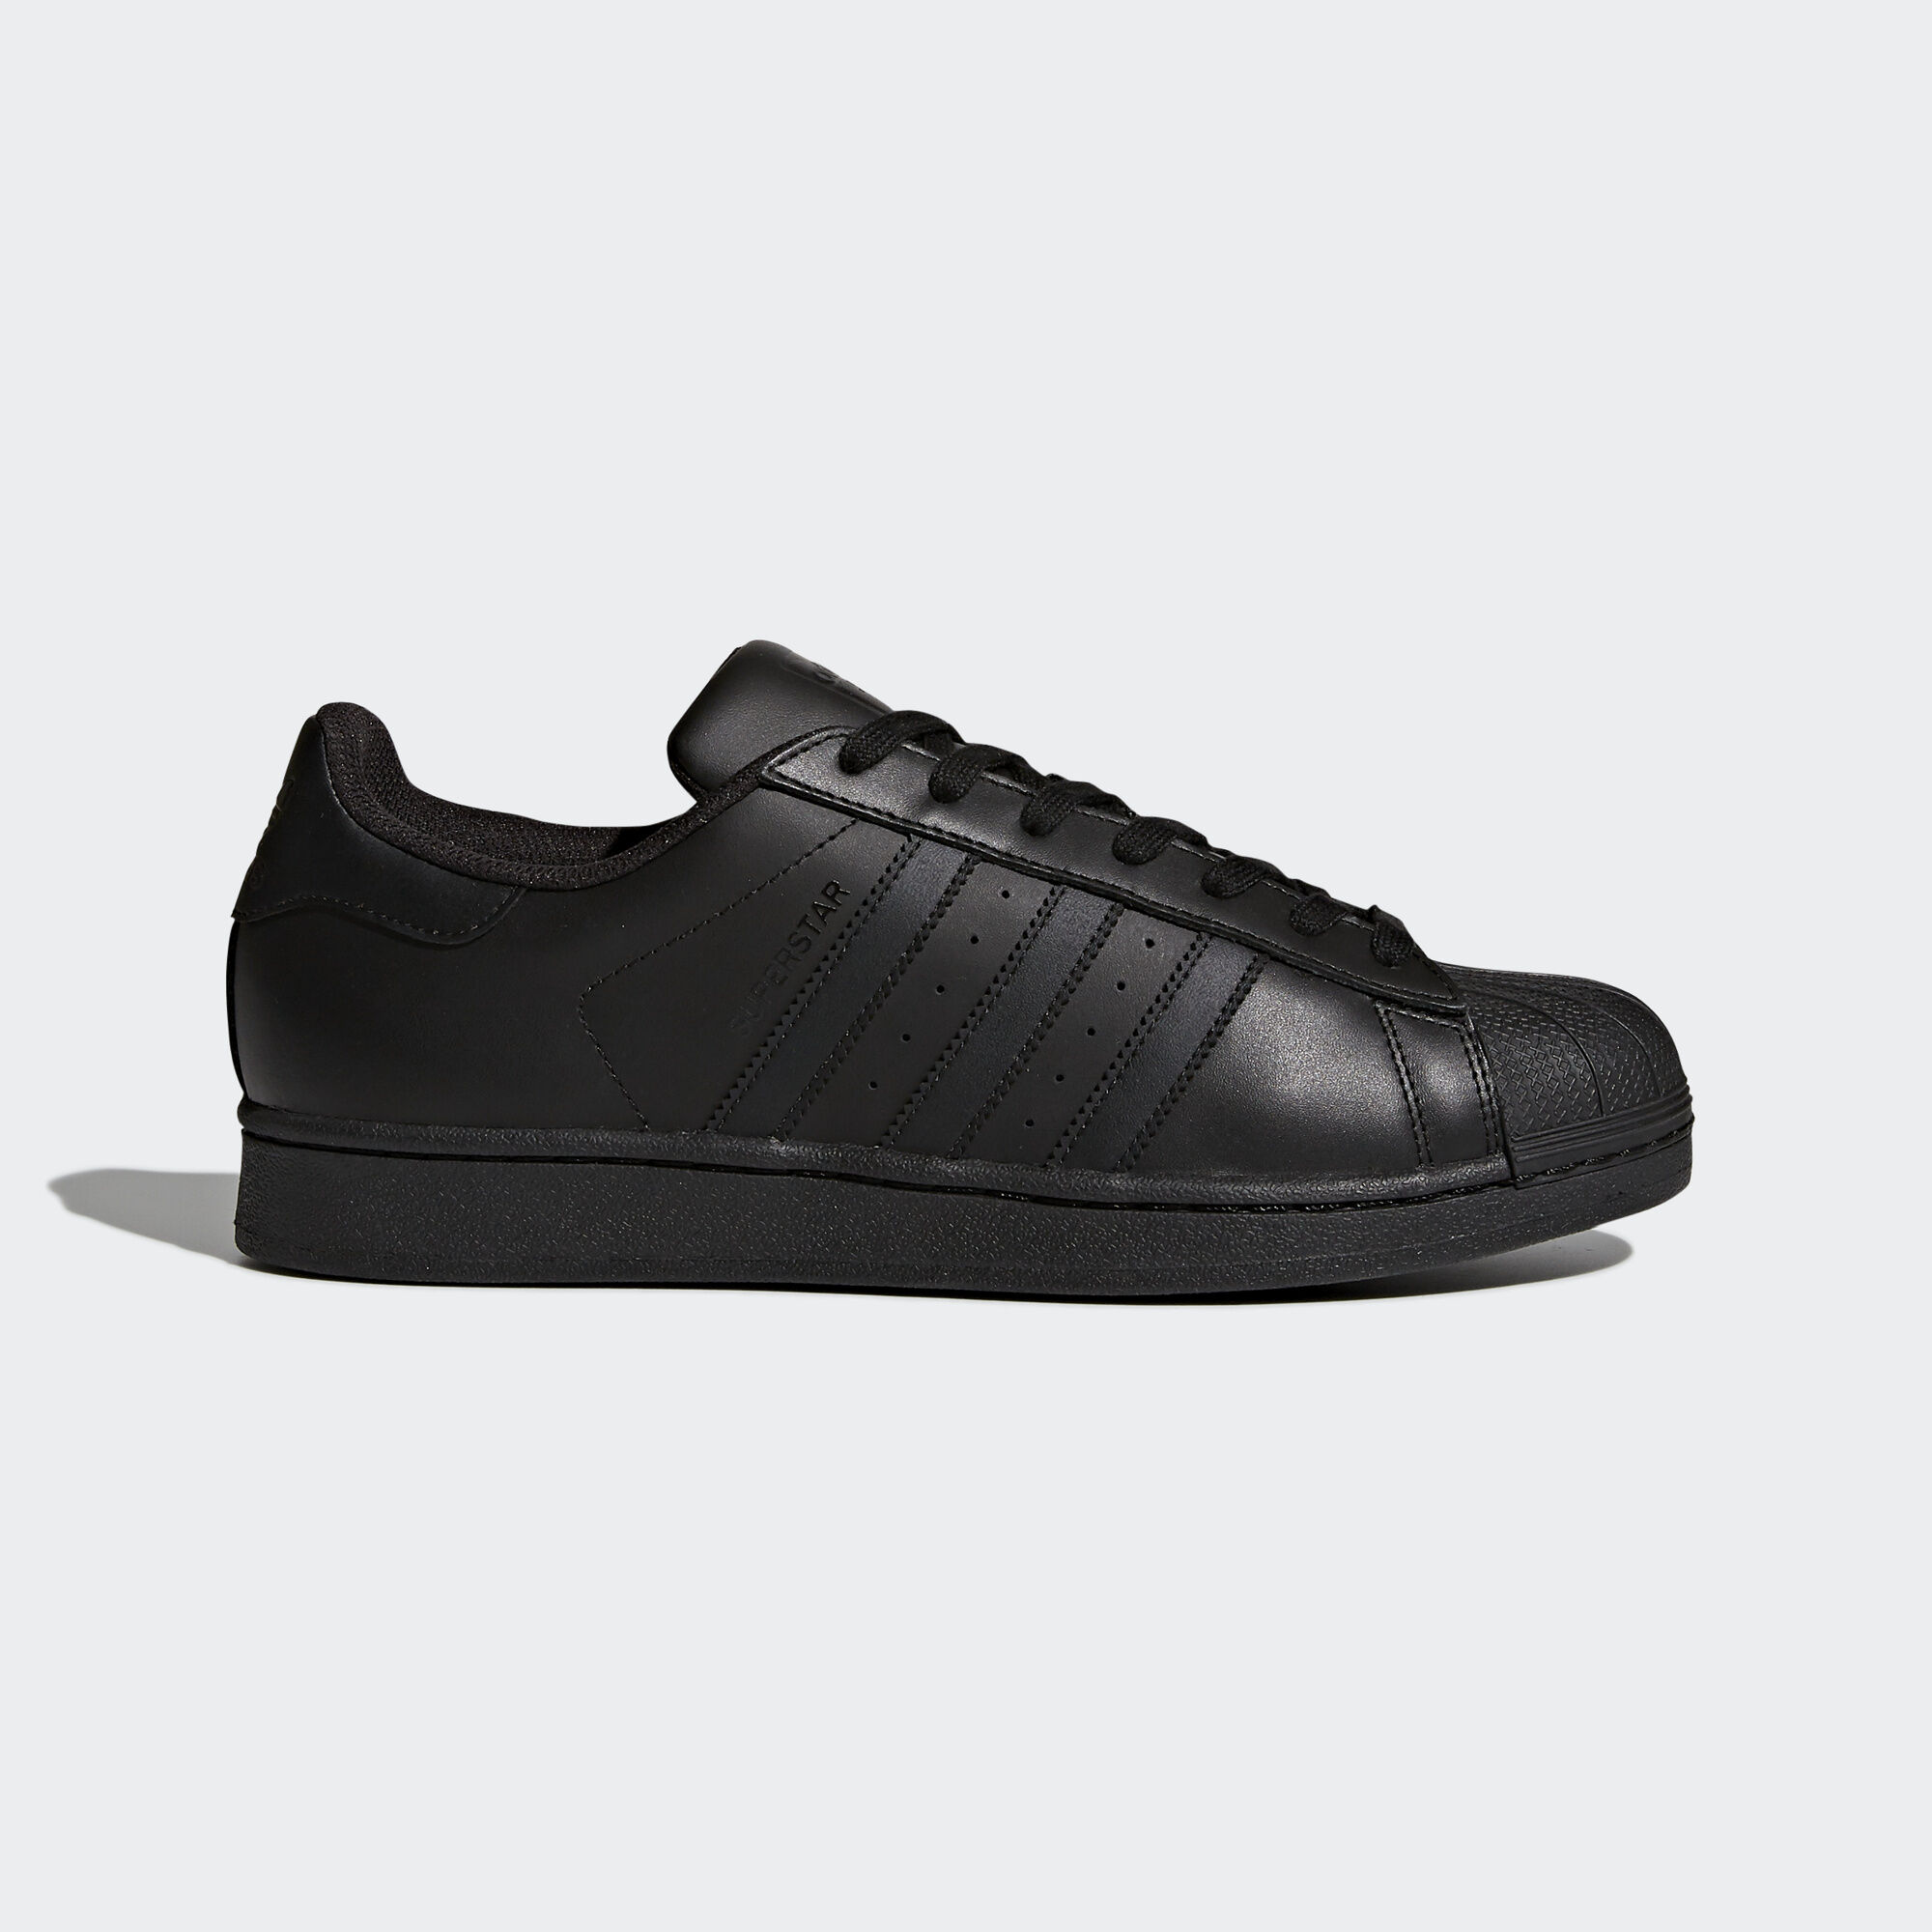 Cheap Adidas Men 's Superstar Vulc Shoes Black / White New York